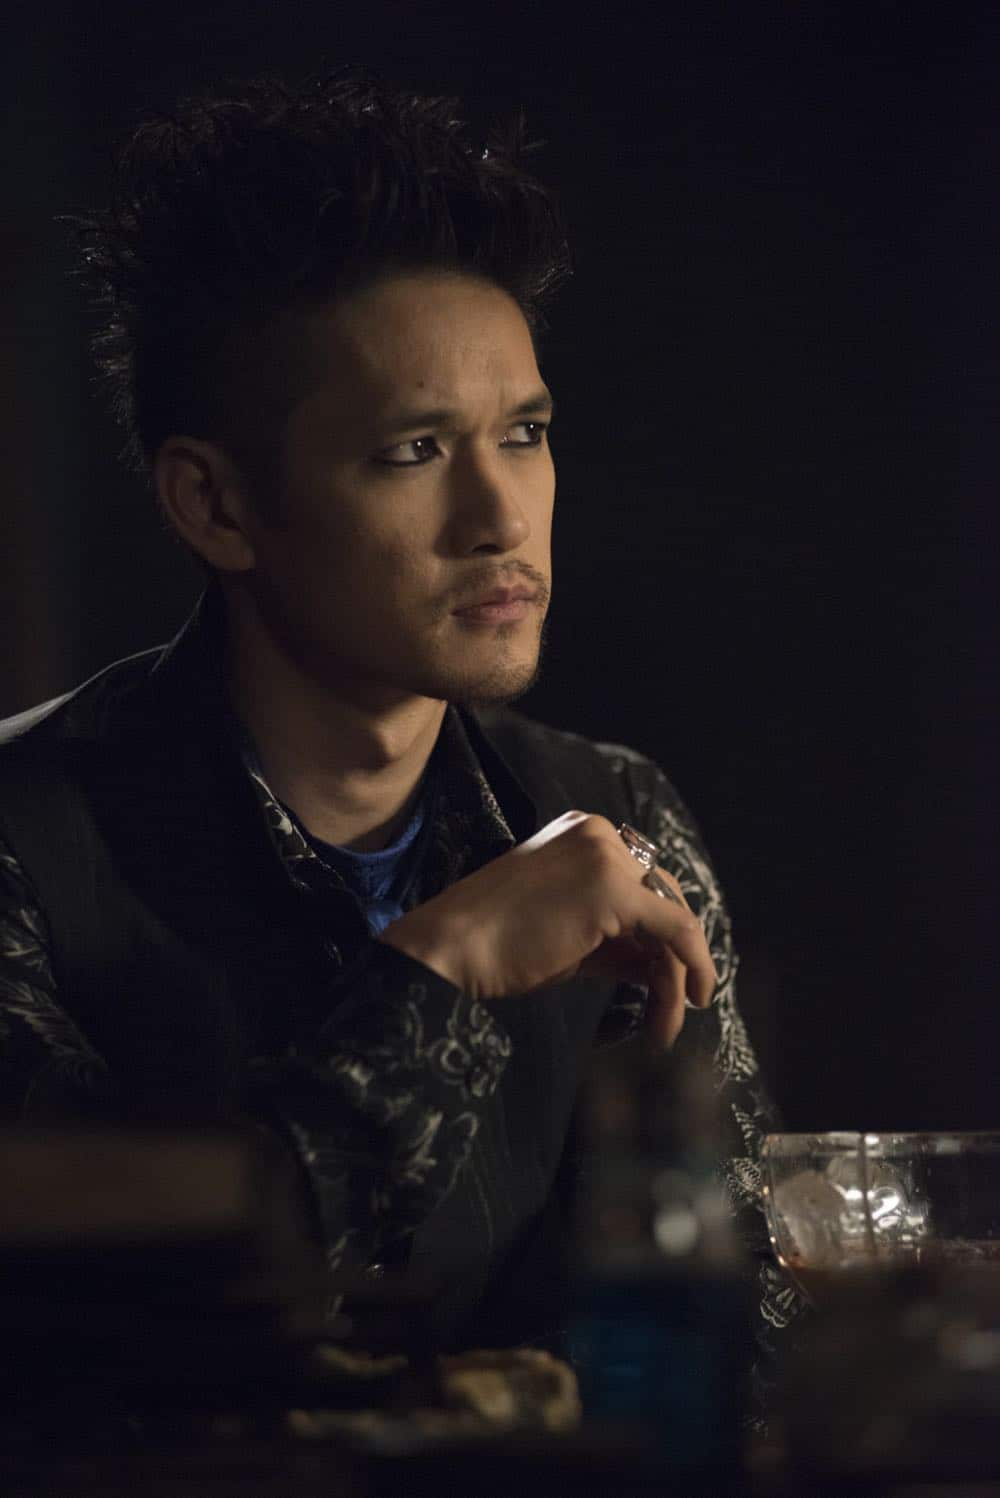 """SHADOWHUNTERS - """"Salt In The Wound"""" - With the Owl's identity revealed, Alec, Isabelle, and Clary head to Alicante to try and find a way to stop him. Luke and Simon team up to track Lilith's  latest possible victim. Maia reflects on her past. This episode of """"Shadowhunters"""" airs Tuesday, May 1 (8:00 - 9:00 p.m. EDT) on Freeform. (Freeform/John Medland) HARRY CHUM JR."""